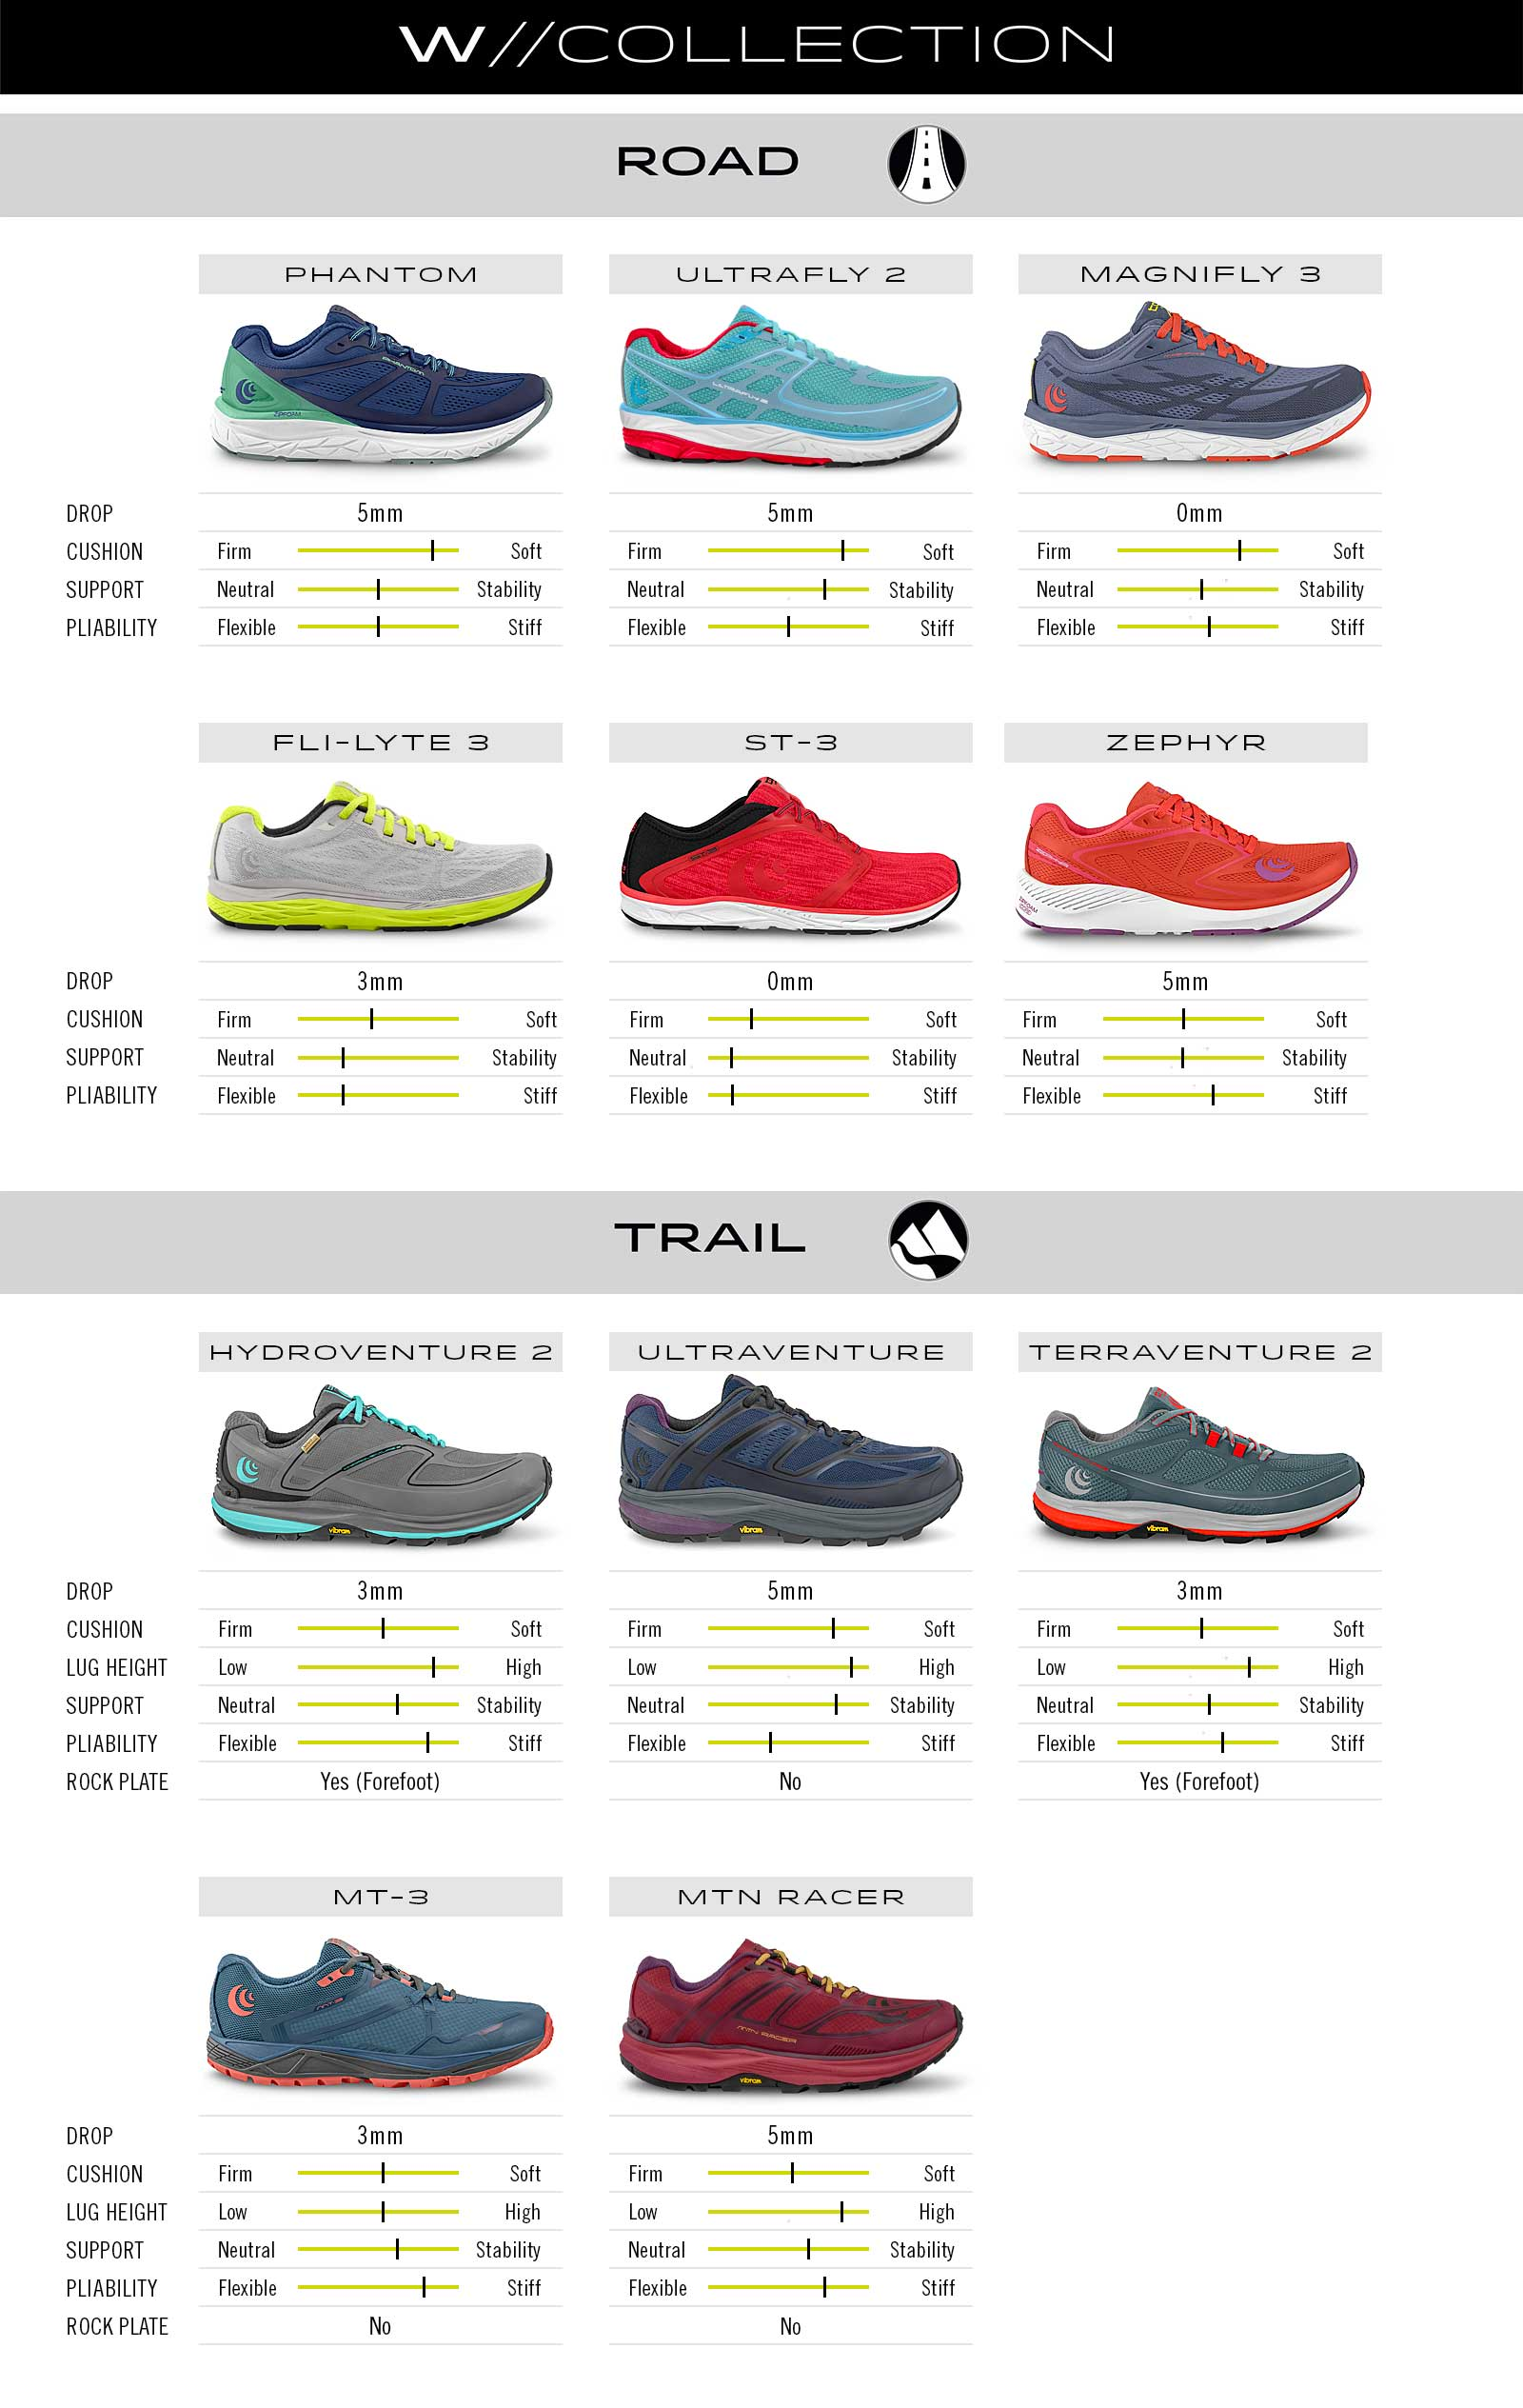 Comparison chart of Women's Topo Running Shoes available in the UK.